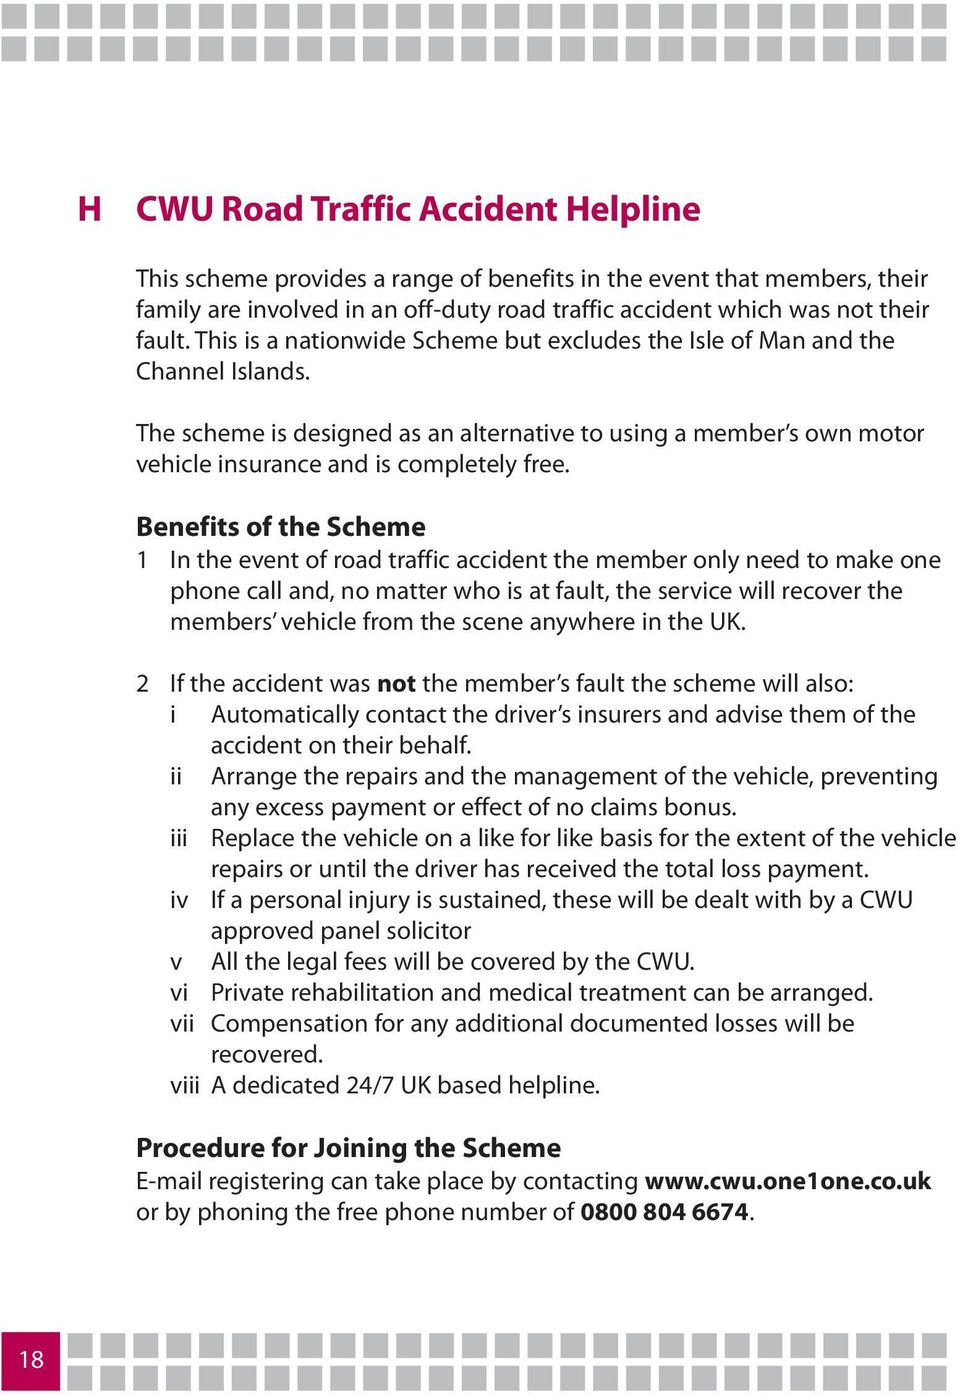 Benefits of the Scheme 1 In the event of road traffic accident the member only need to make one phone call and, no matter who is at fault, the service will recover the members vehicle from the scene